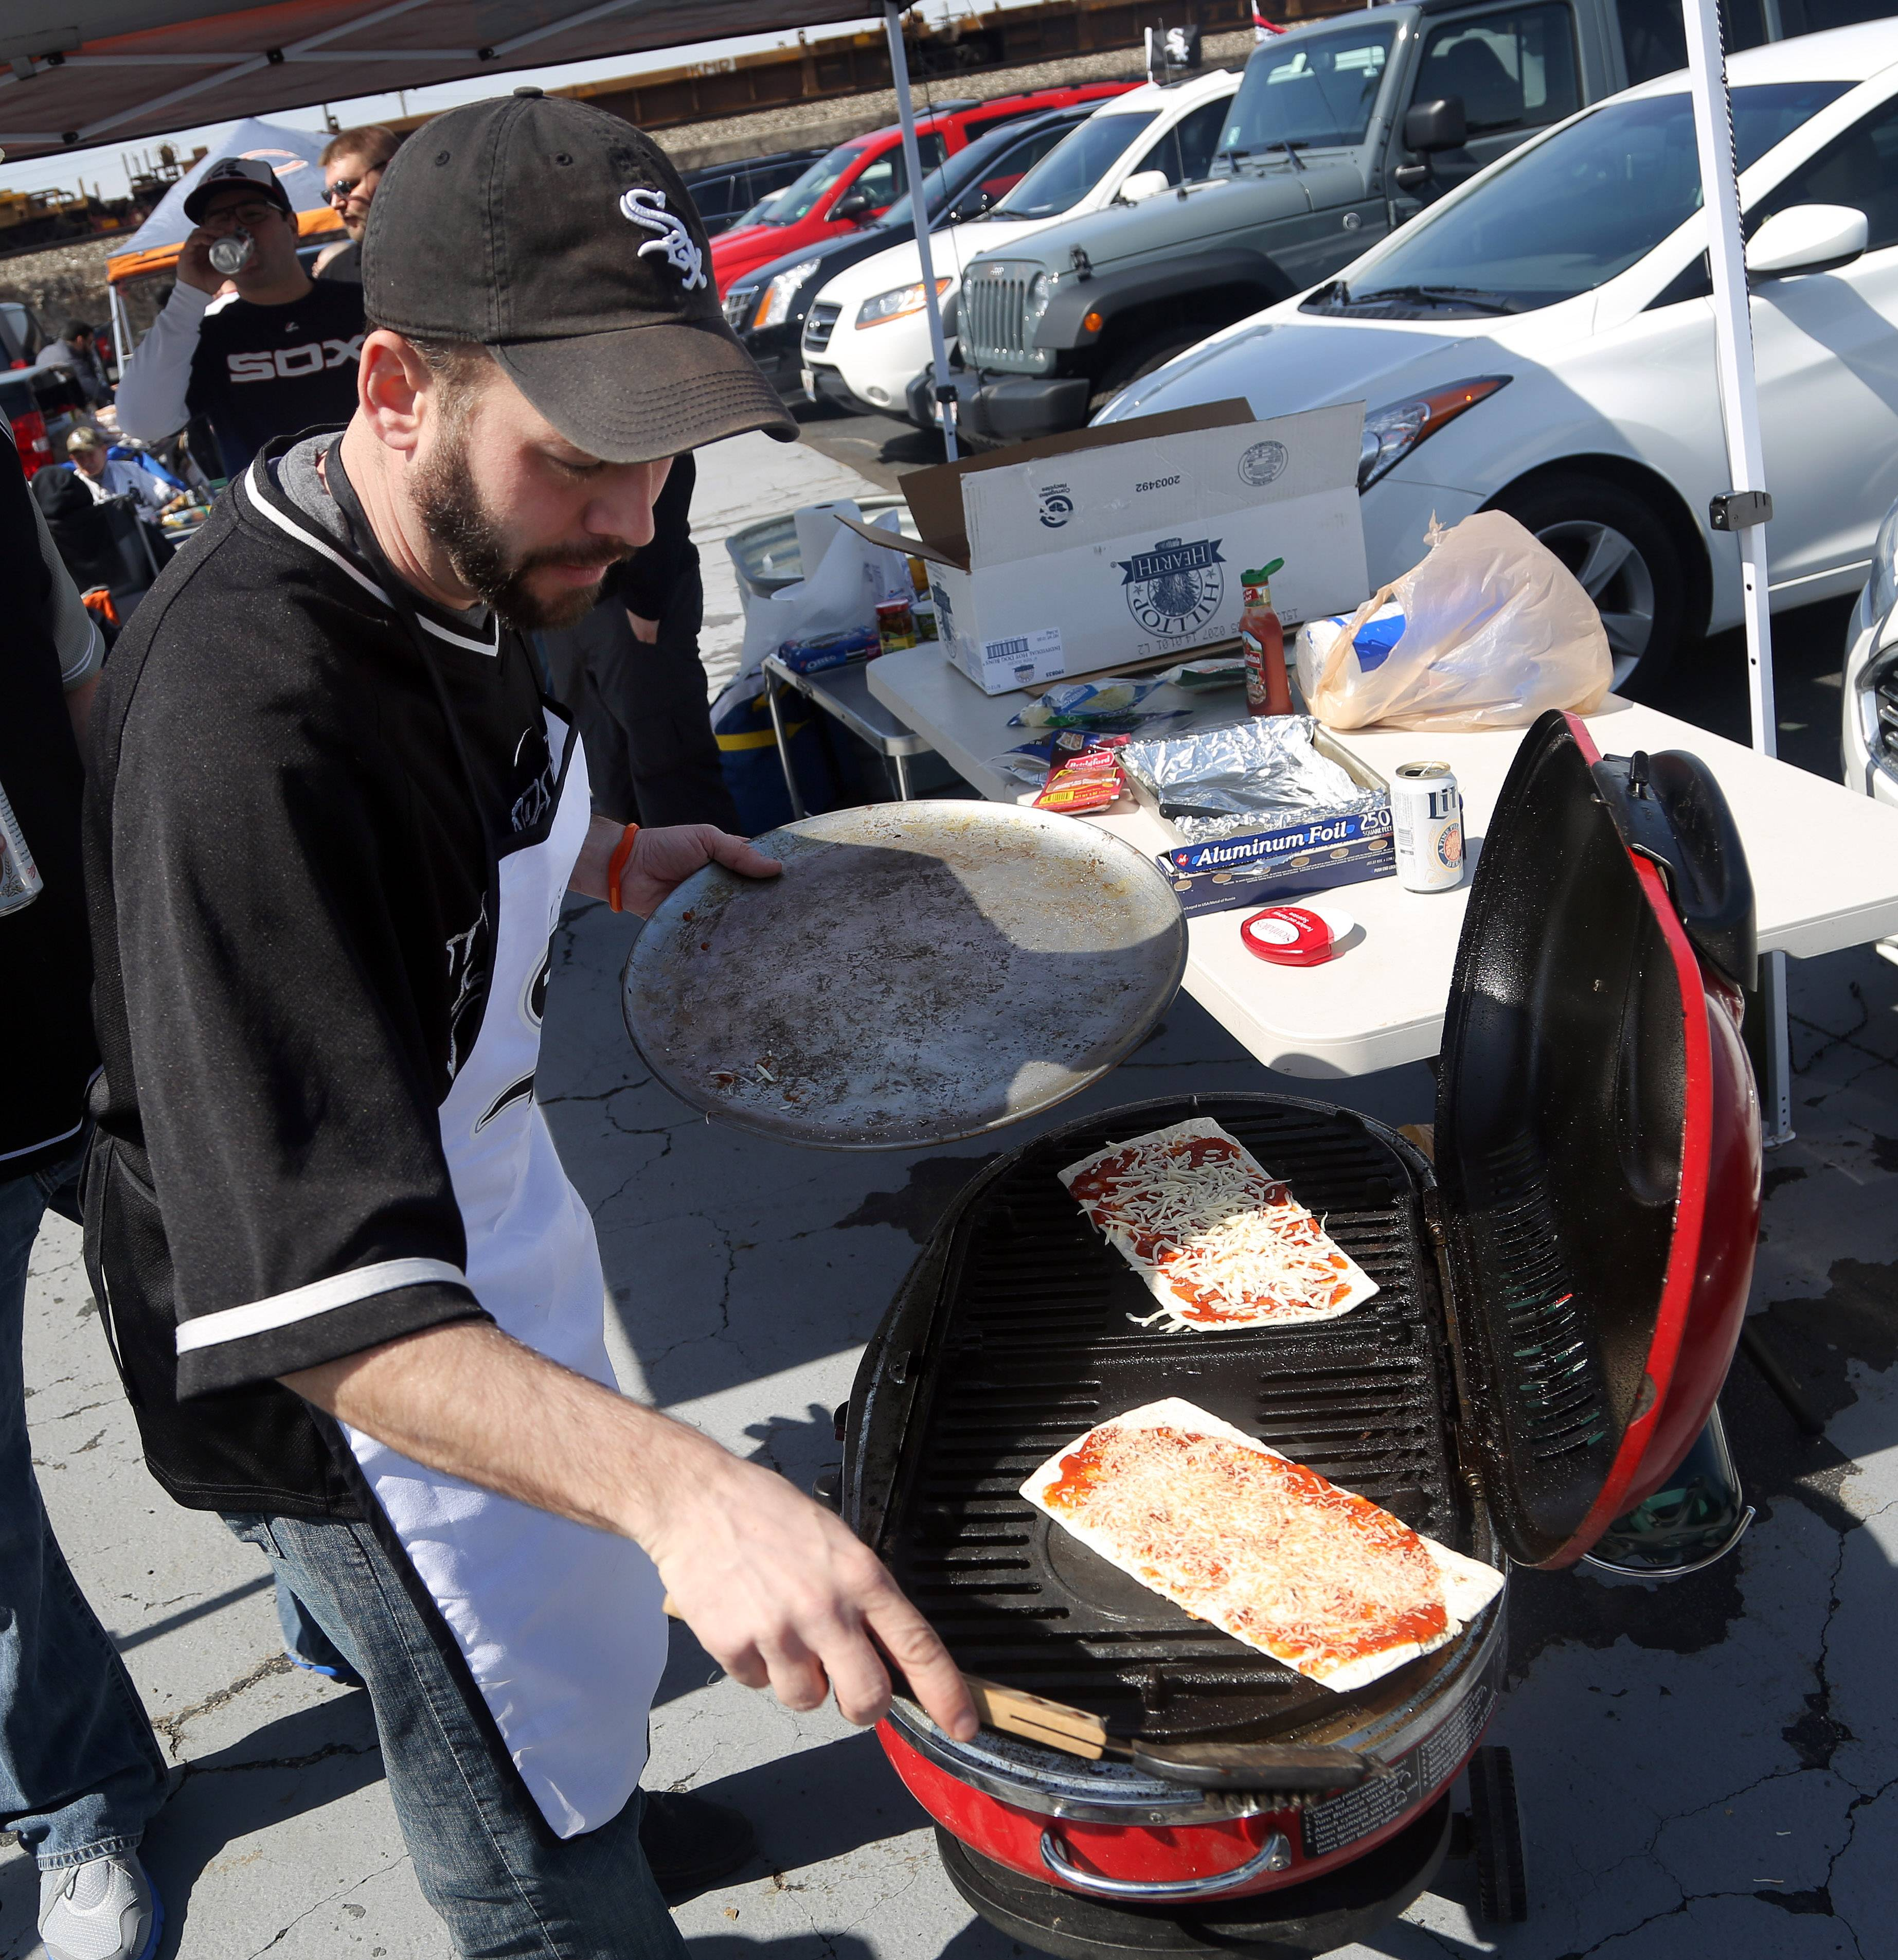 Mike Mele of Mundelein grills some flat bread pizza.